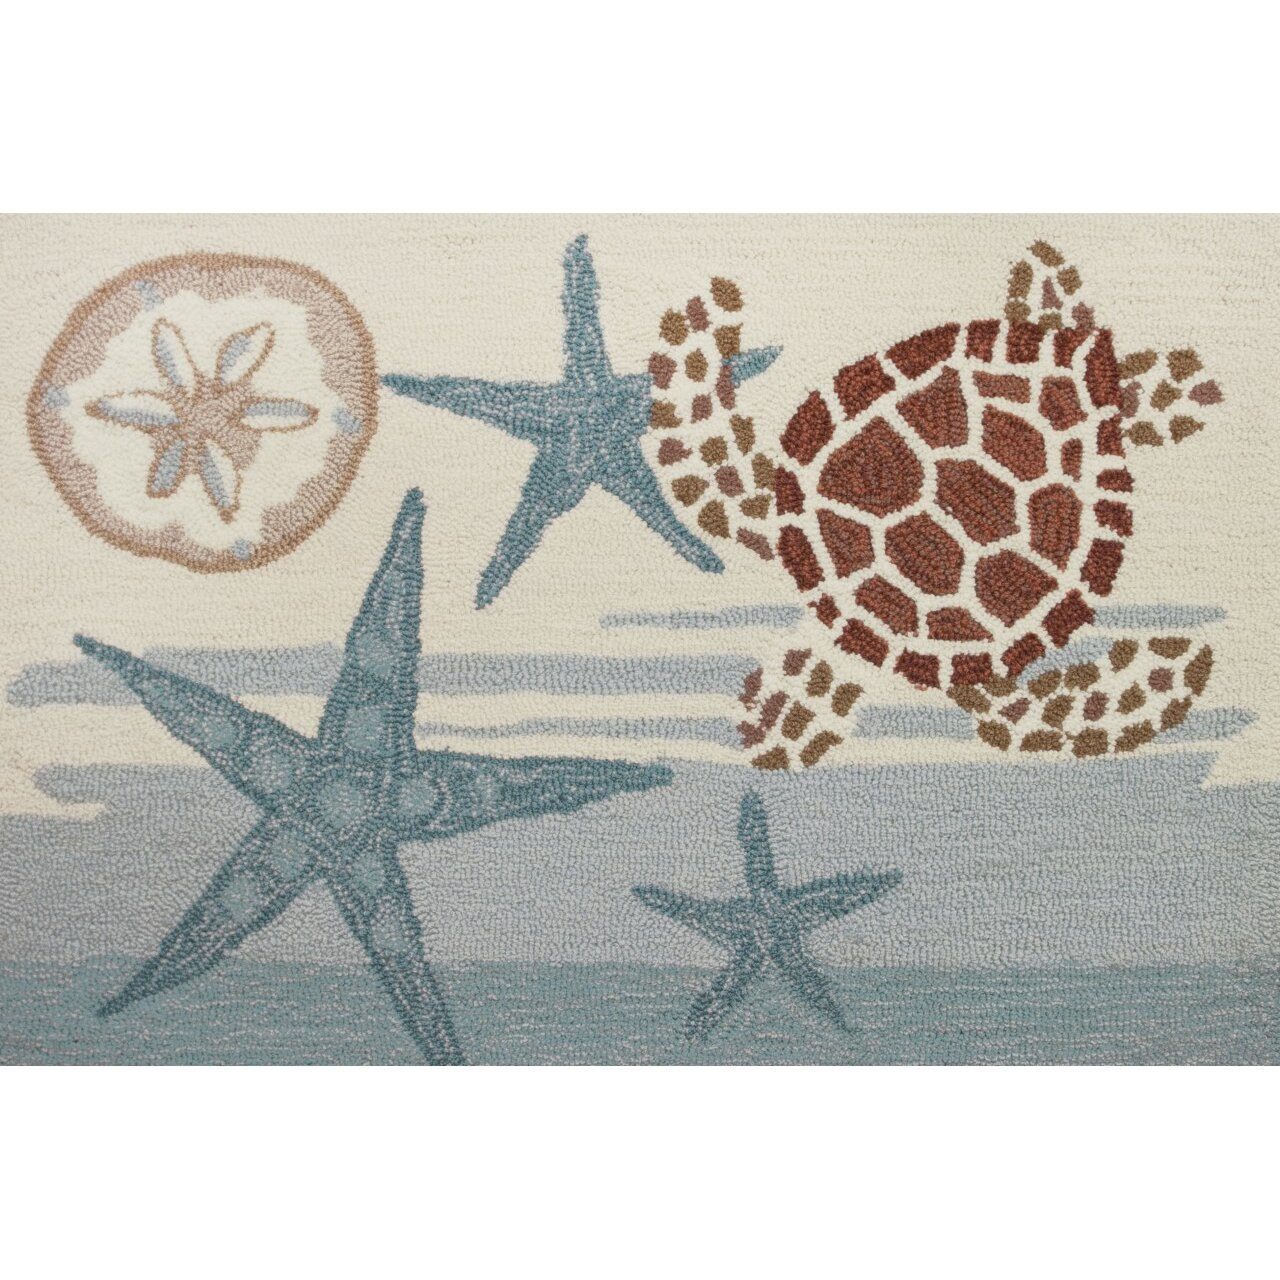 Homefires Coastal Turtle Rug & Reviews